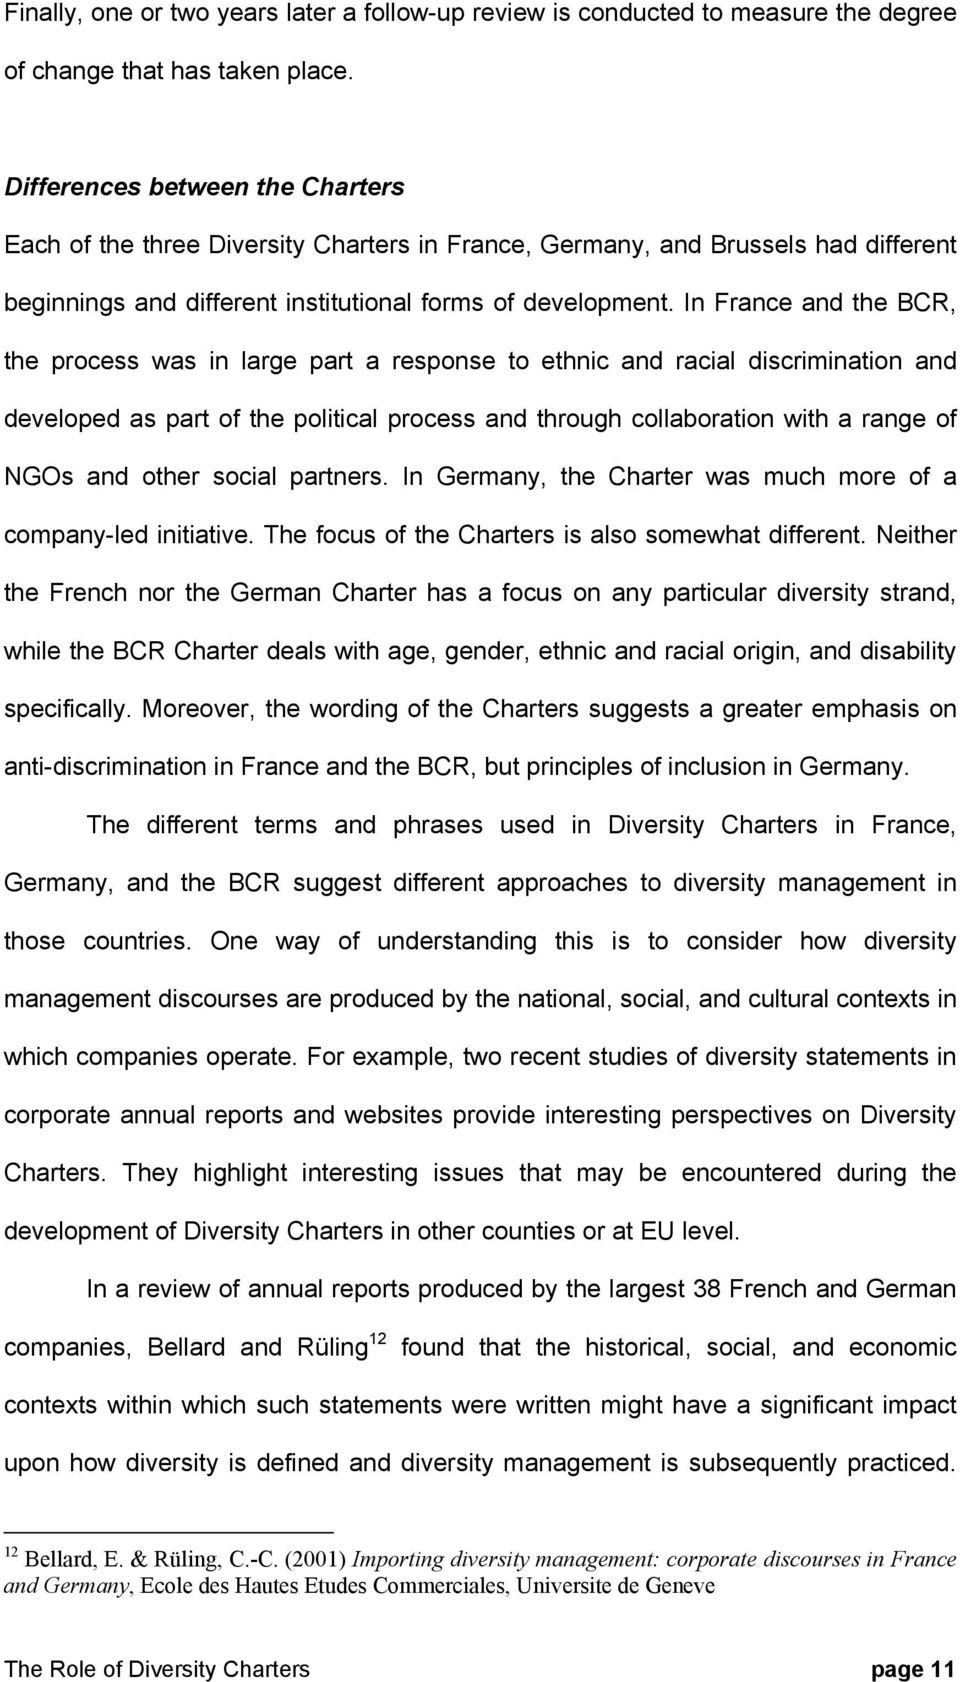 In France and the BCR, the process was in large part a response to ethnic and racial discrimination and developed as part of the political process and through collaboration with a range of NGOs and